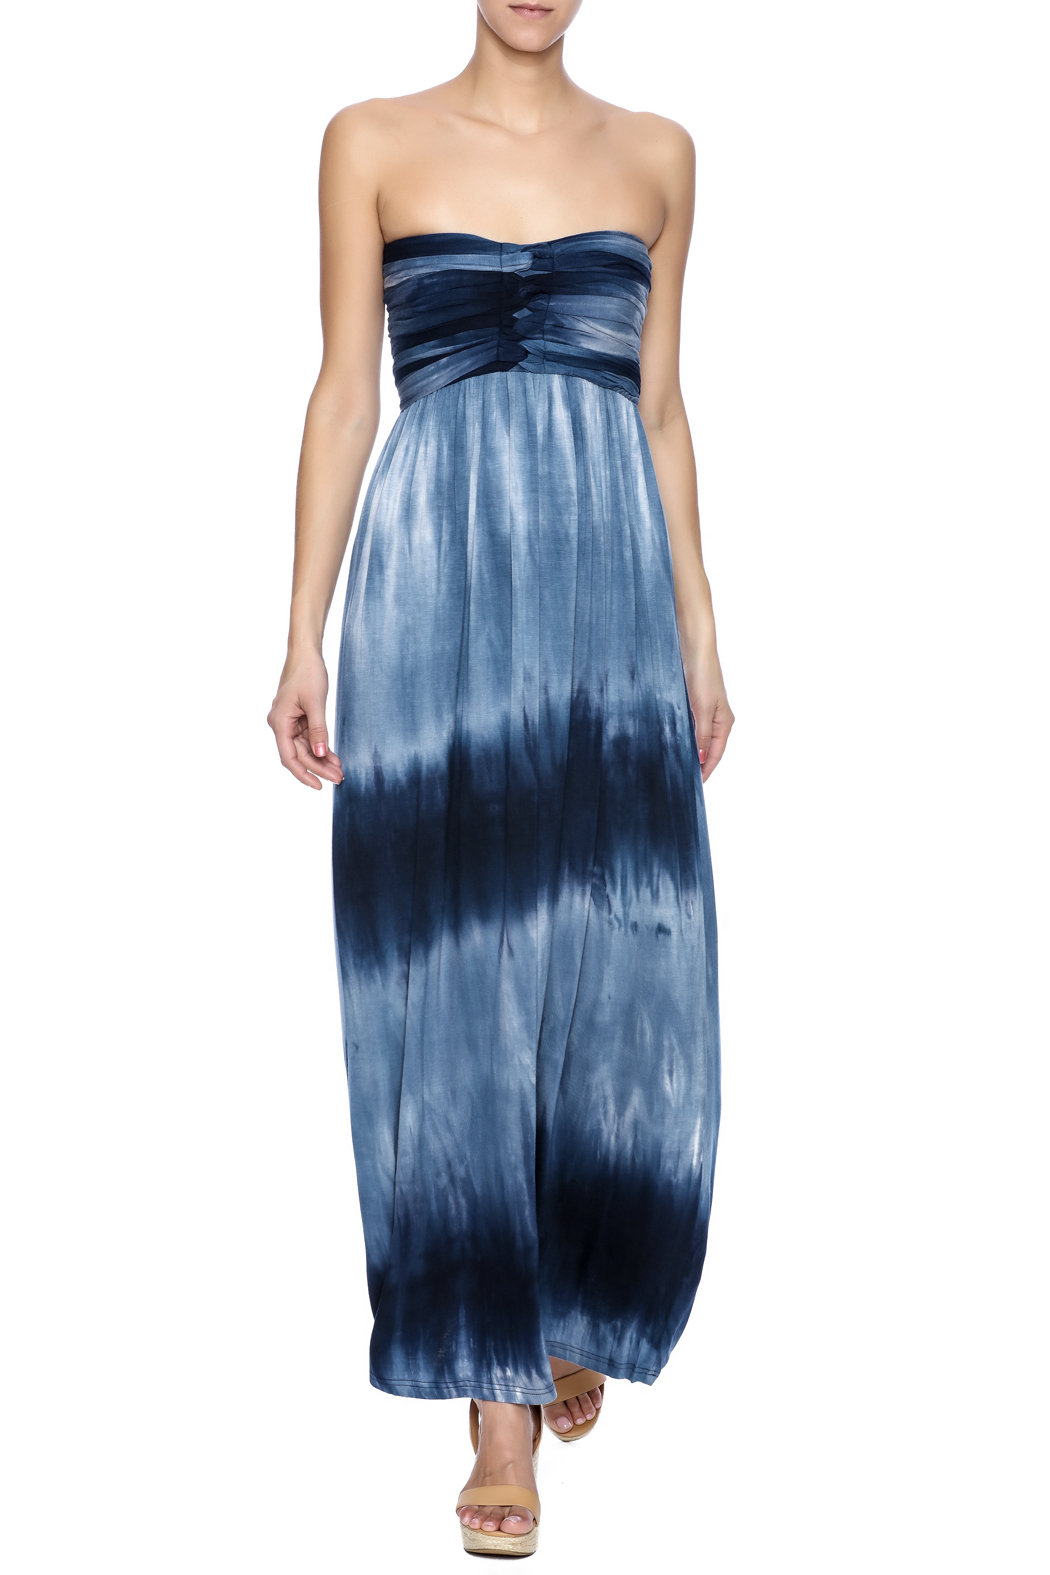 Catwalk Studio Tie Dye Maxi from California by Euphoria ...